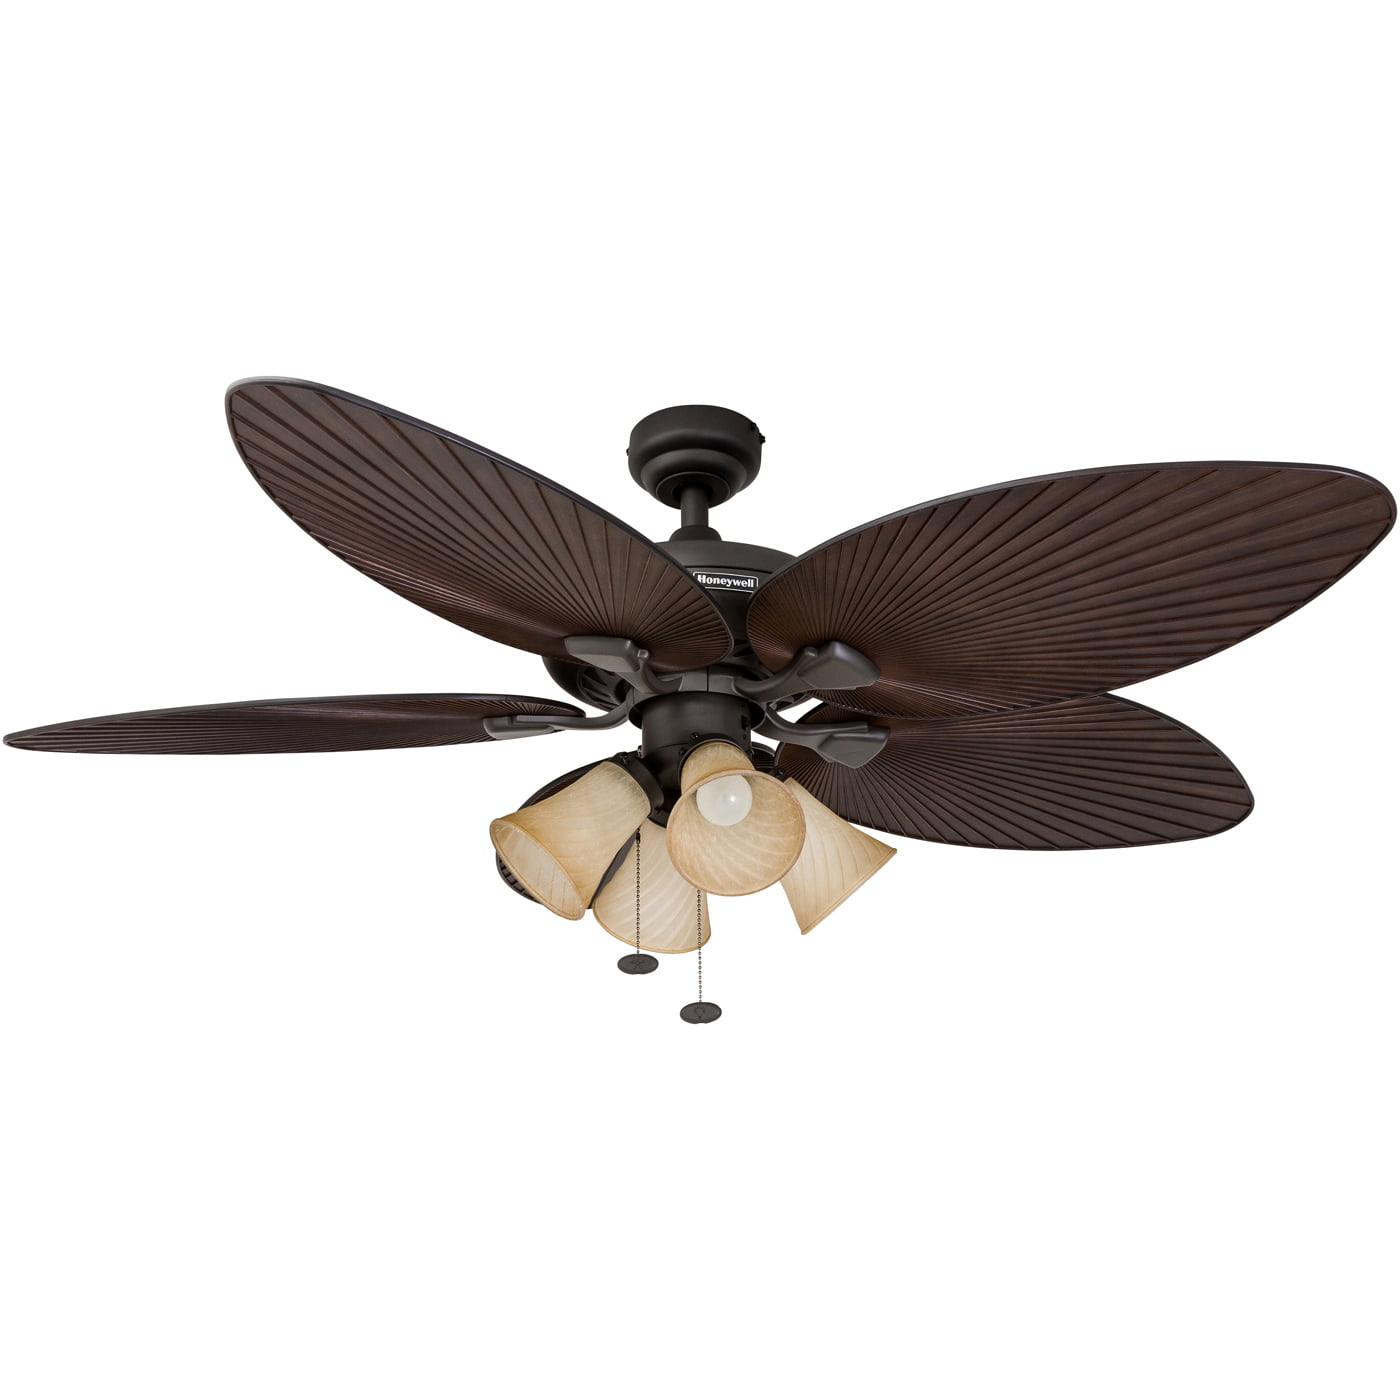 "52"" Honeywell Palm Island Bronze, Tropical Ceiling Fan with 4 Light by HKC"